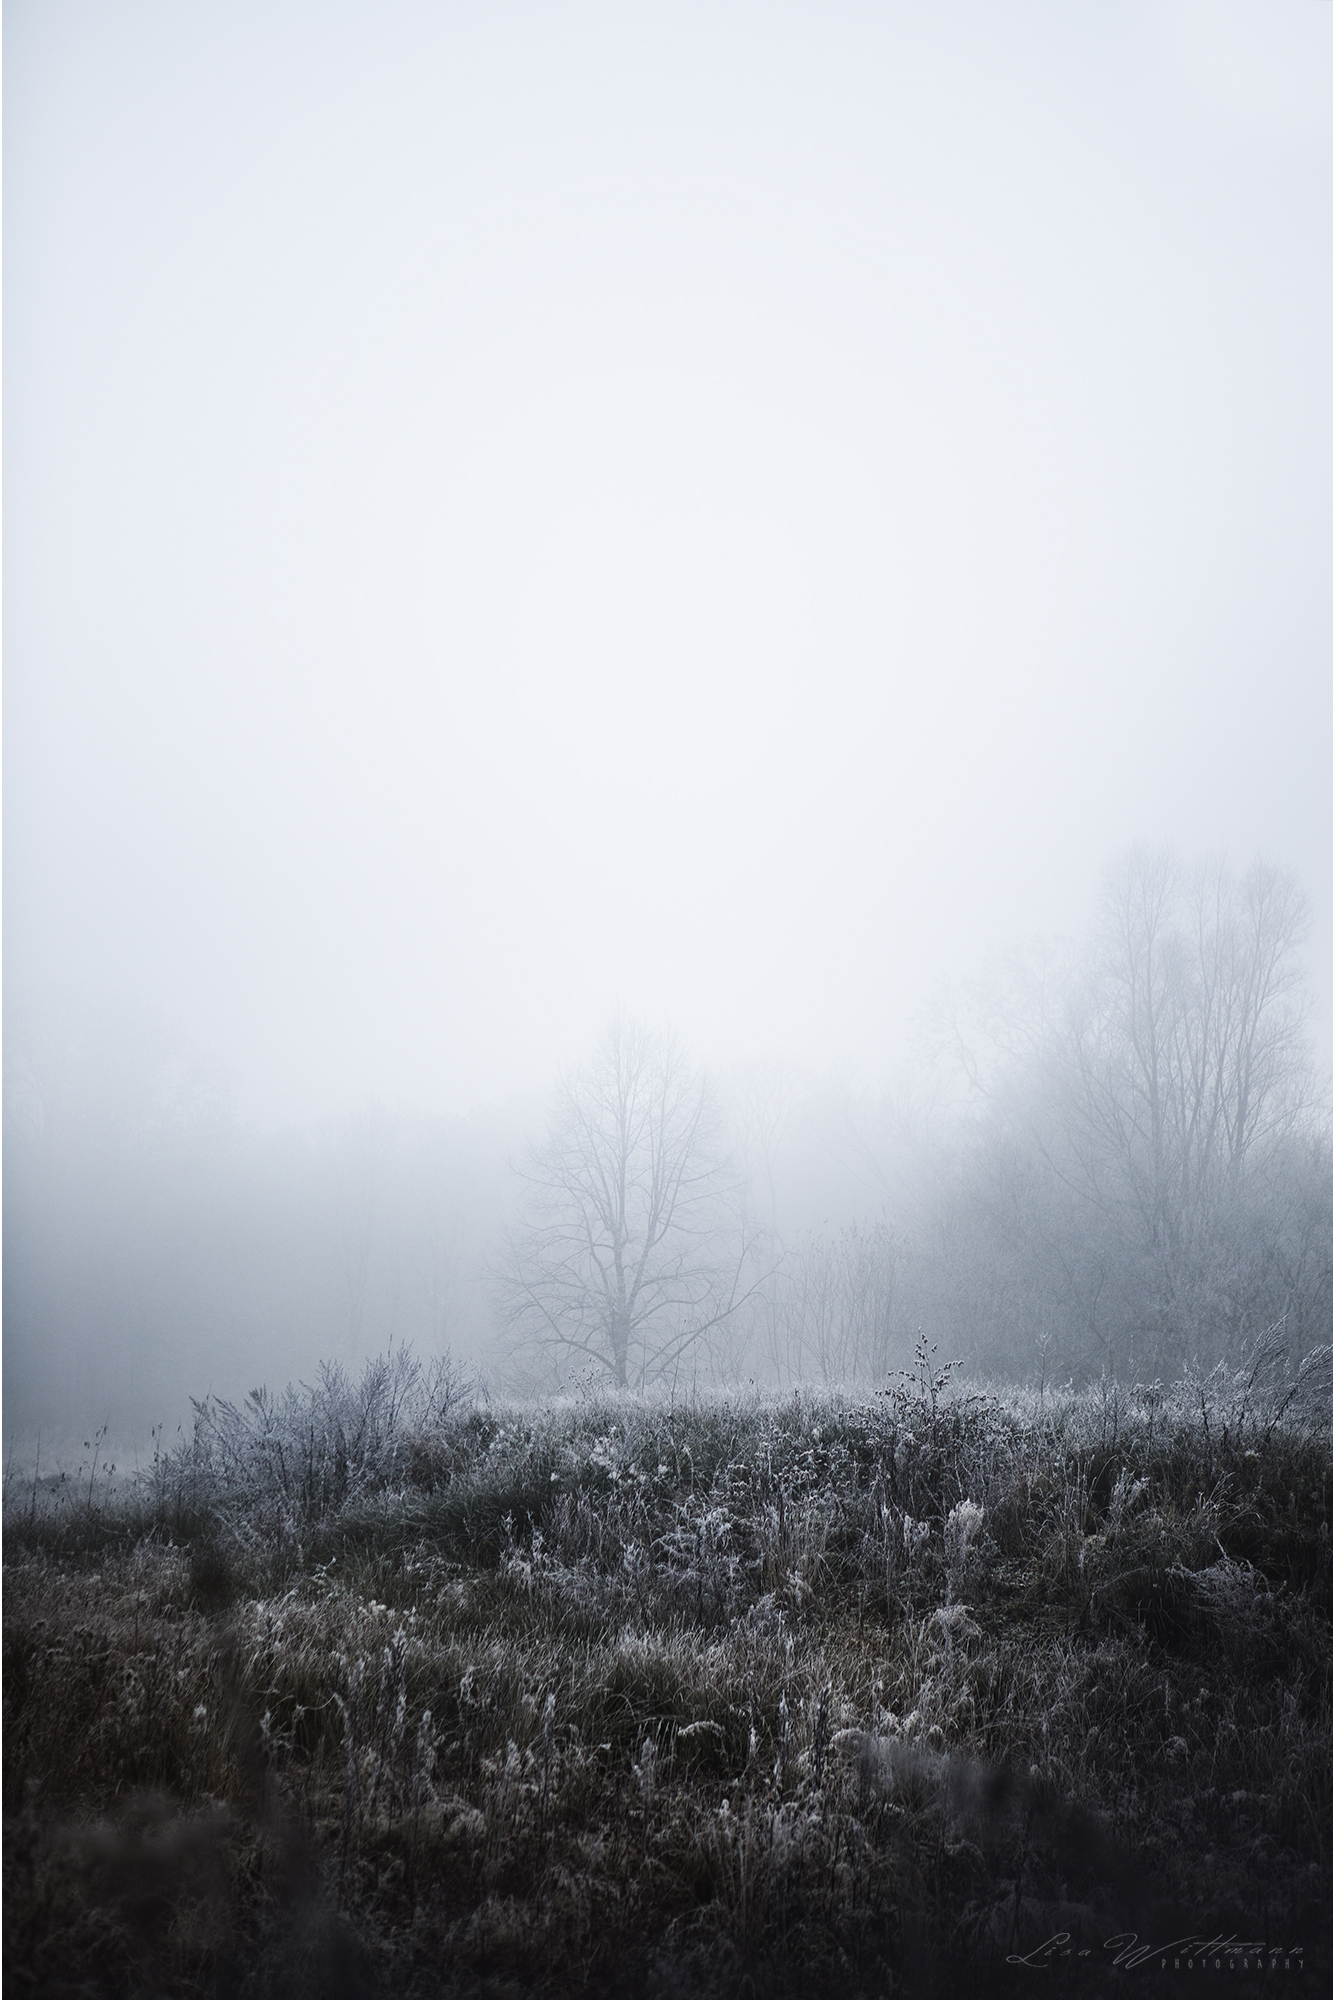 landscape_dust_fog_lake_tree_winter_christmas_atmosphere_cold_lisa_wittmann_photography_canon_dream_calm_freeze_nature__